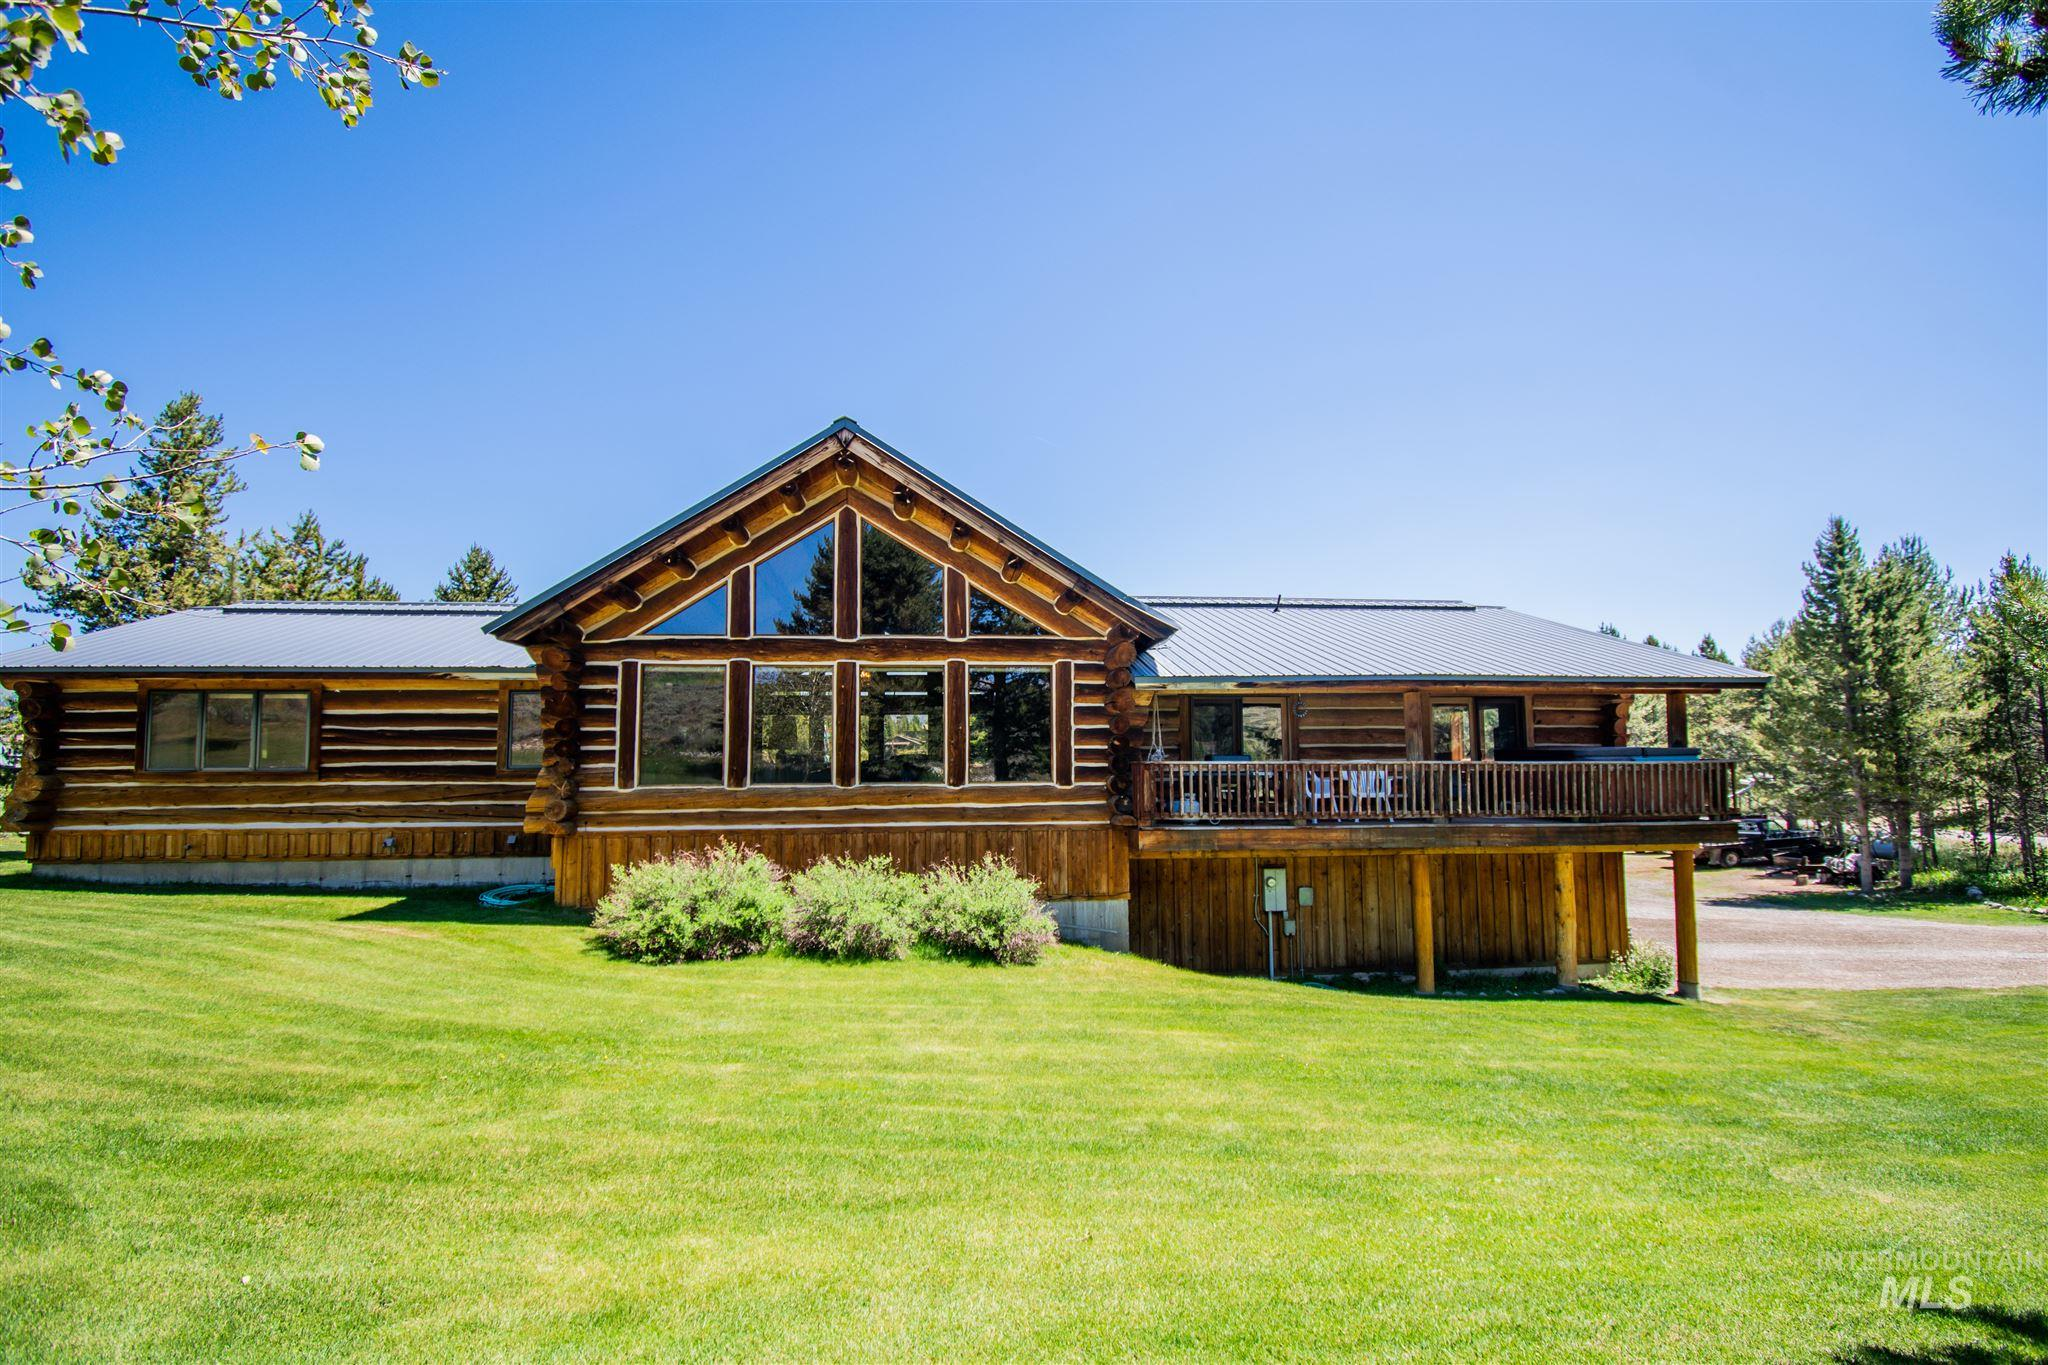 Spectacular log home on just over an acre. Spacious floor plan with 4 Bedrooms 3 Bathrooms. Large deck to relax and enjoy the views of the stunning Sawtooth Mountains. Bring horses and your ATV's. This home is absolutely perfect for summer weekends or snowy winter holidays.